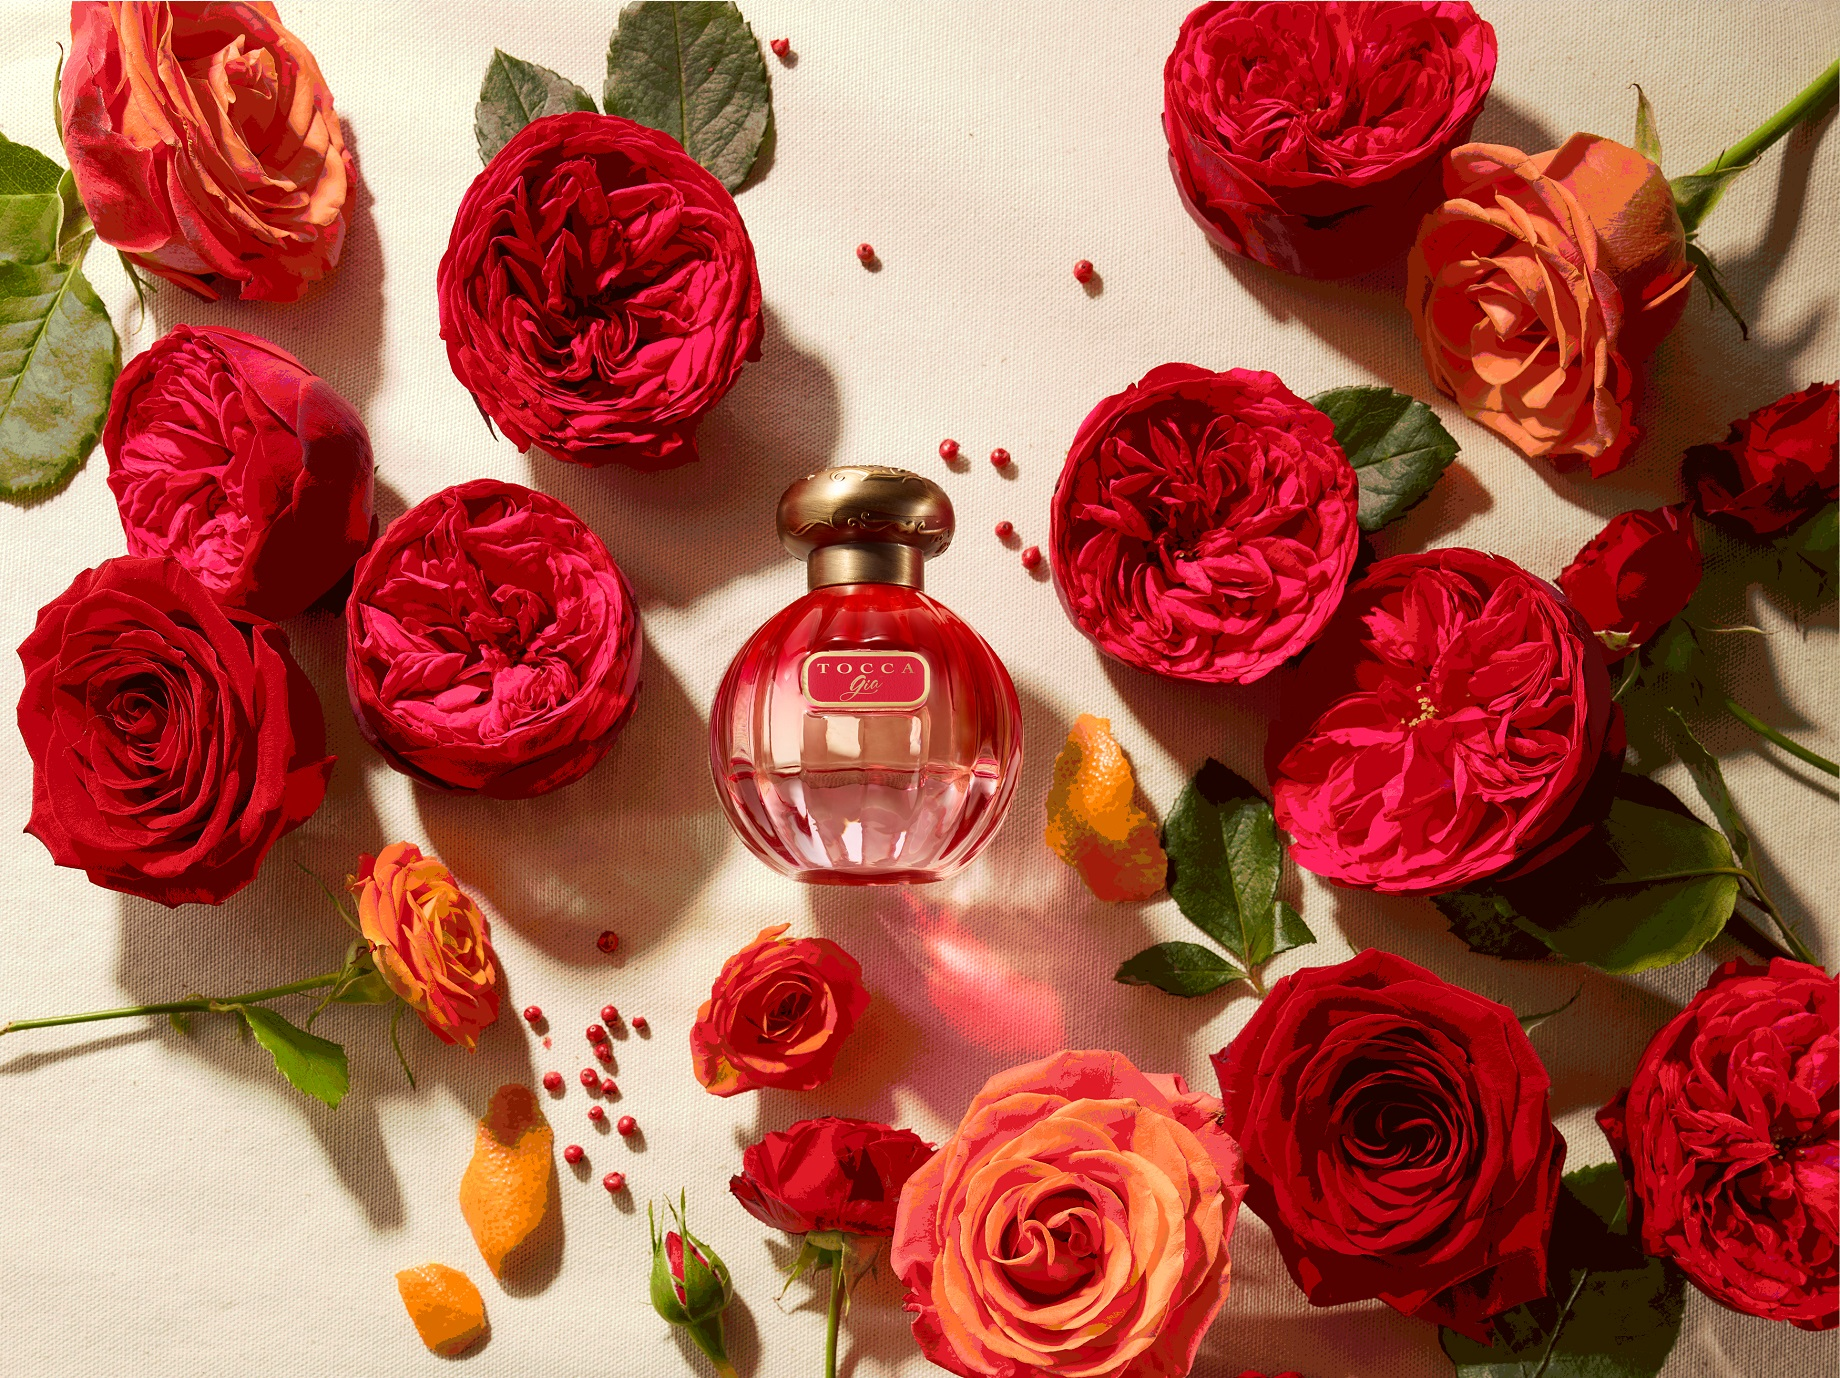 Perfume of the Month, October 2019: Gia by Tocca